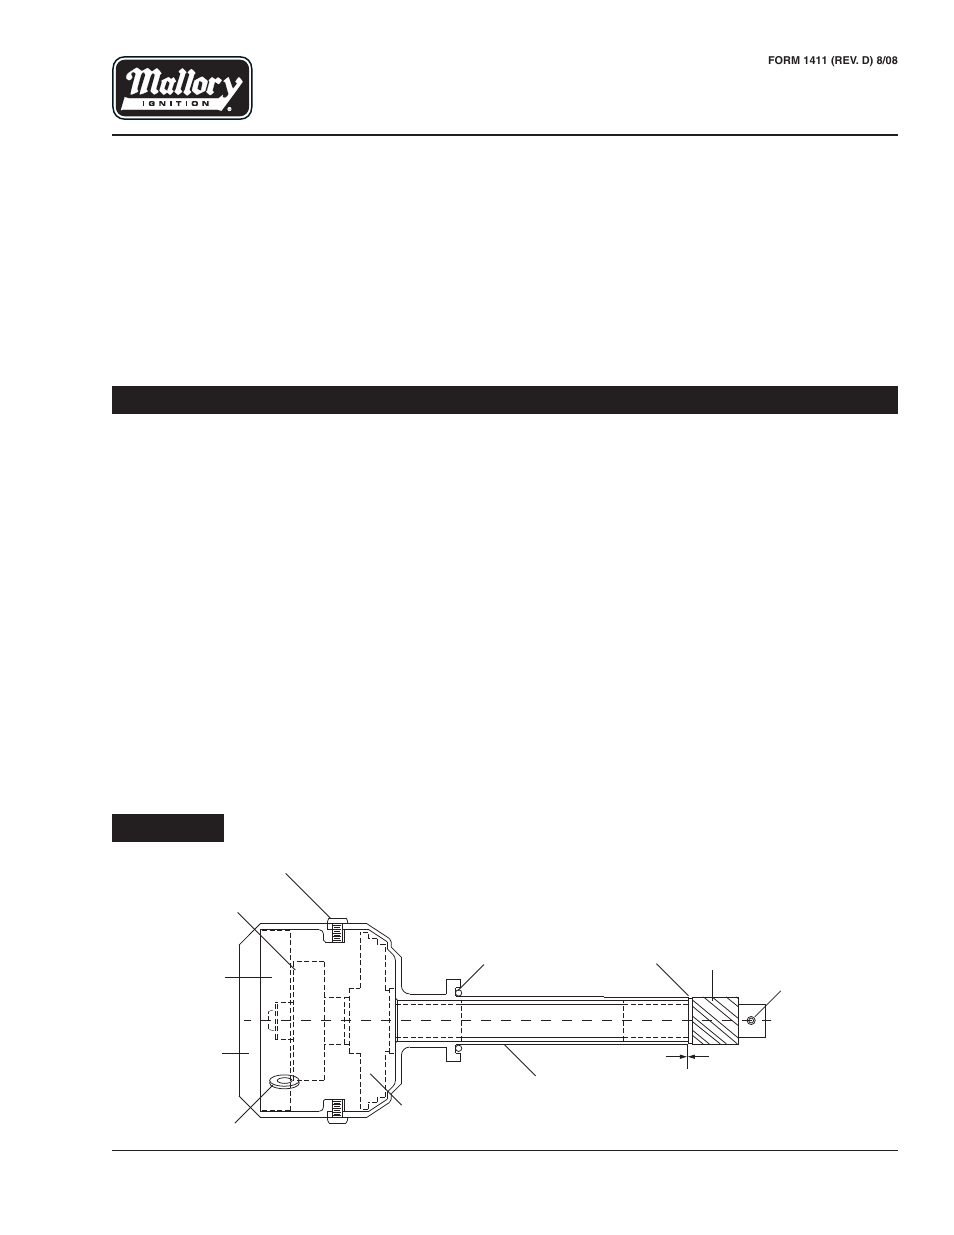 Mallory Unilite Distributor Wiring Diagram For Two Wires on 4 wire ignition switch diagram, gm hei ignition wiring diagram, mallory comp 9000 distributor diagram, msd 6al box wiring diagram, hei distributor diagram, electronic ignition diagram, hei module wiring diagram, msd ignition wiring diagram, unilite distributor parts diagram, ford ignition wiring diagram, interior wiring diagram, mallory ignition wiring diagram,